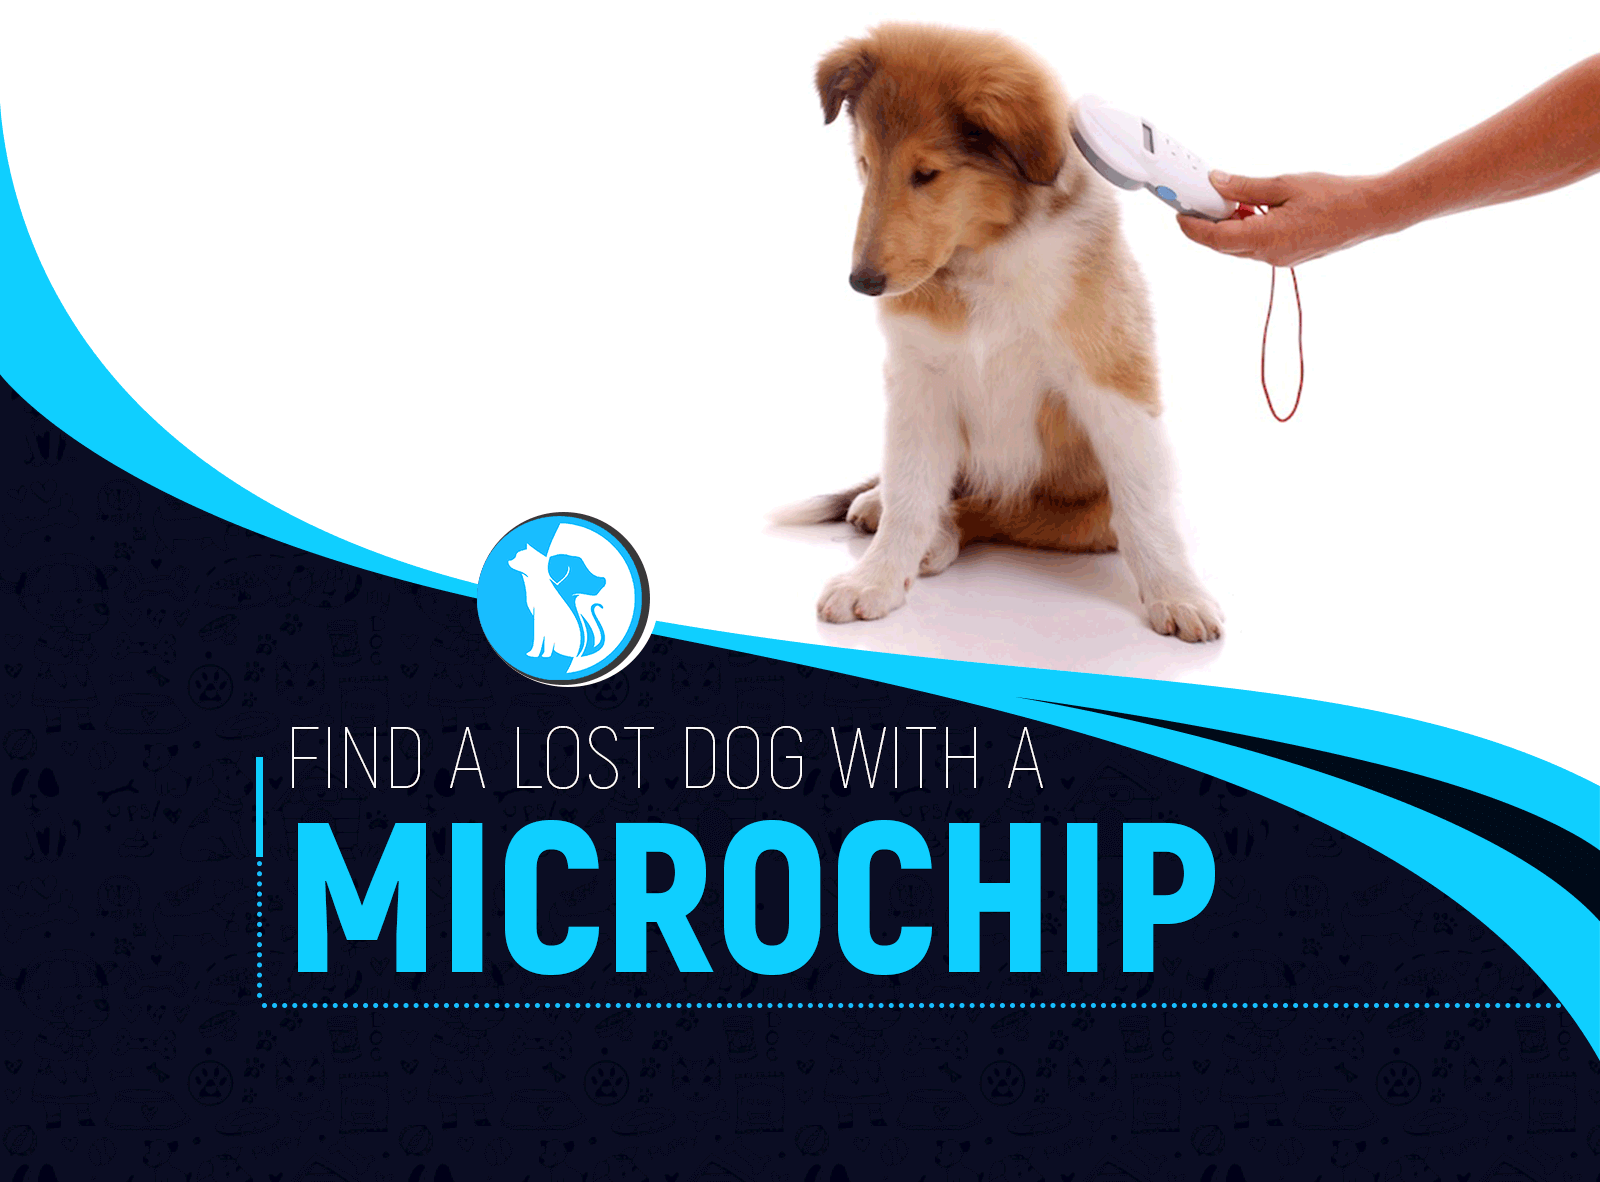 How to Find a Lost Dog with a Microchip